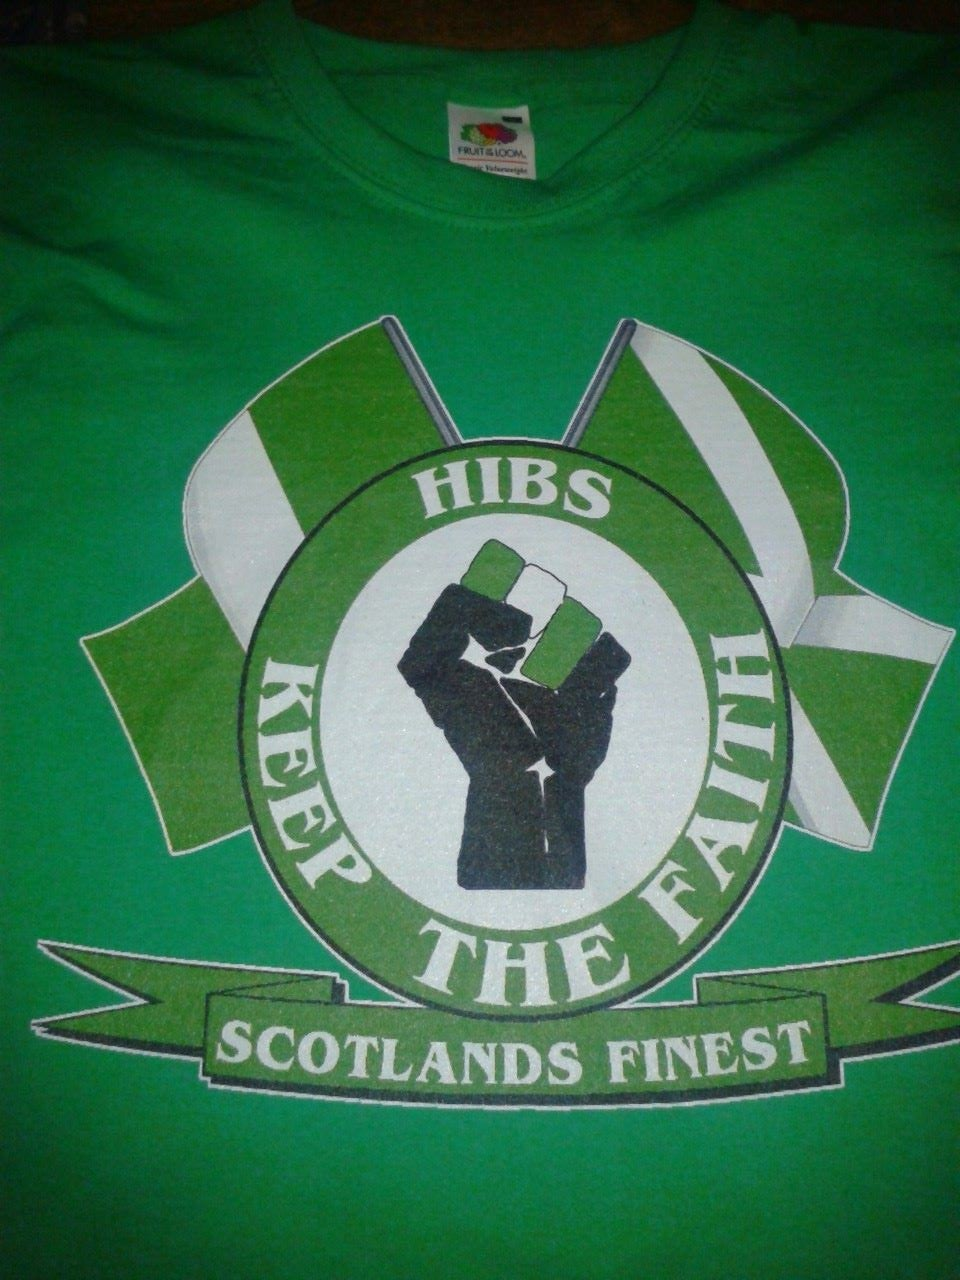 Hibs, Hibernian, Keep The Faith with Flags T-Shirt.